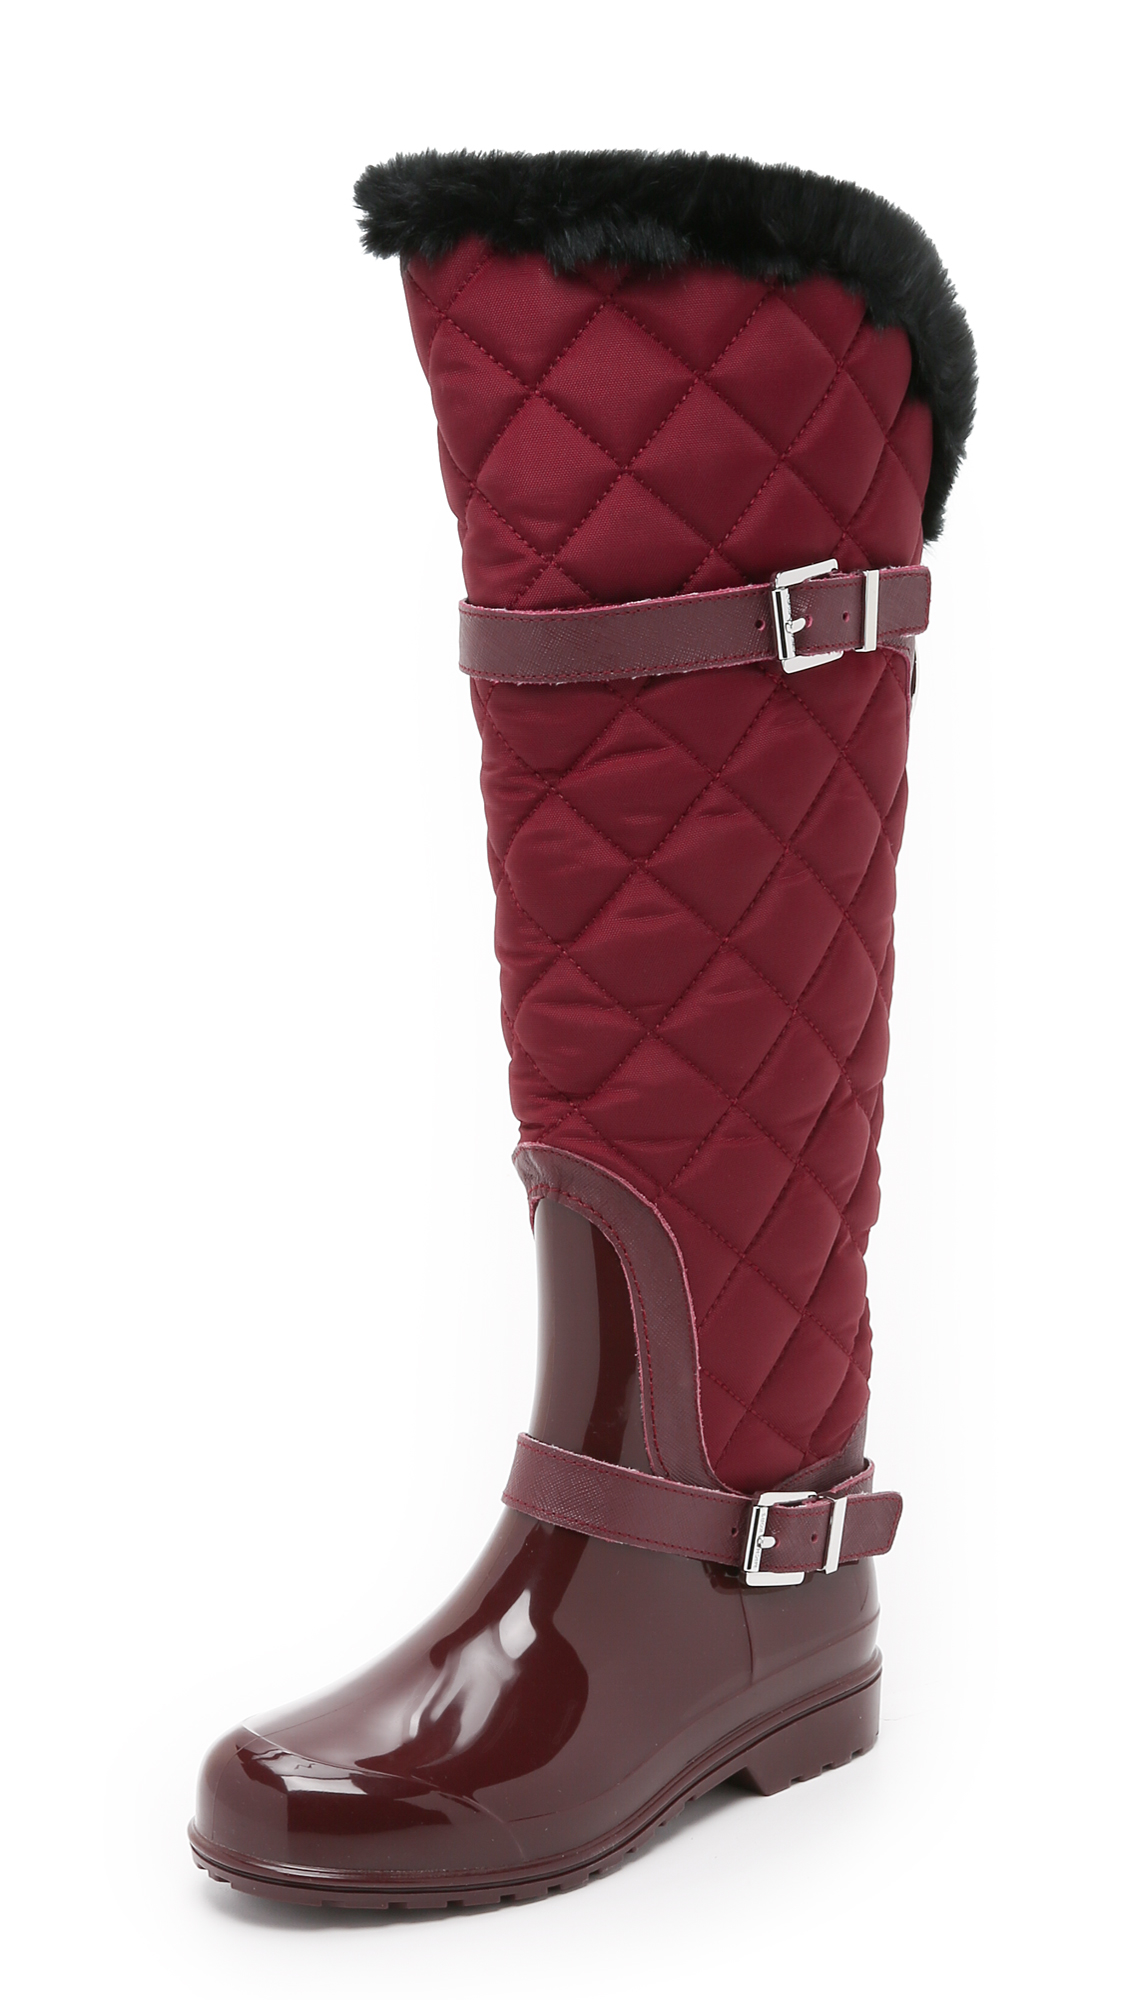 michael michael kors fulton quilted rain boots in red lyst. Black Bedroom Furniture Sets. Home Design Ideas